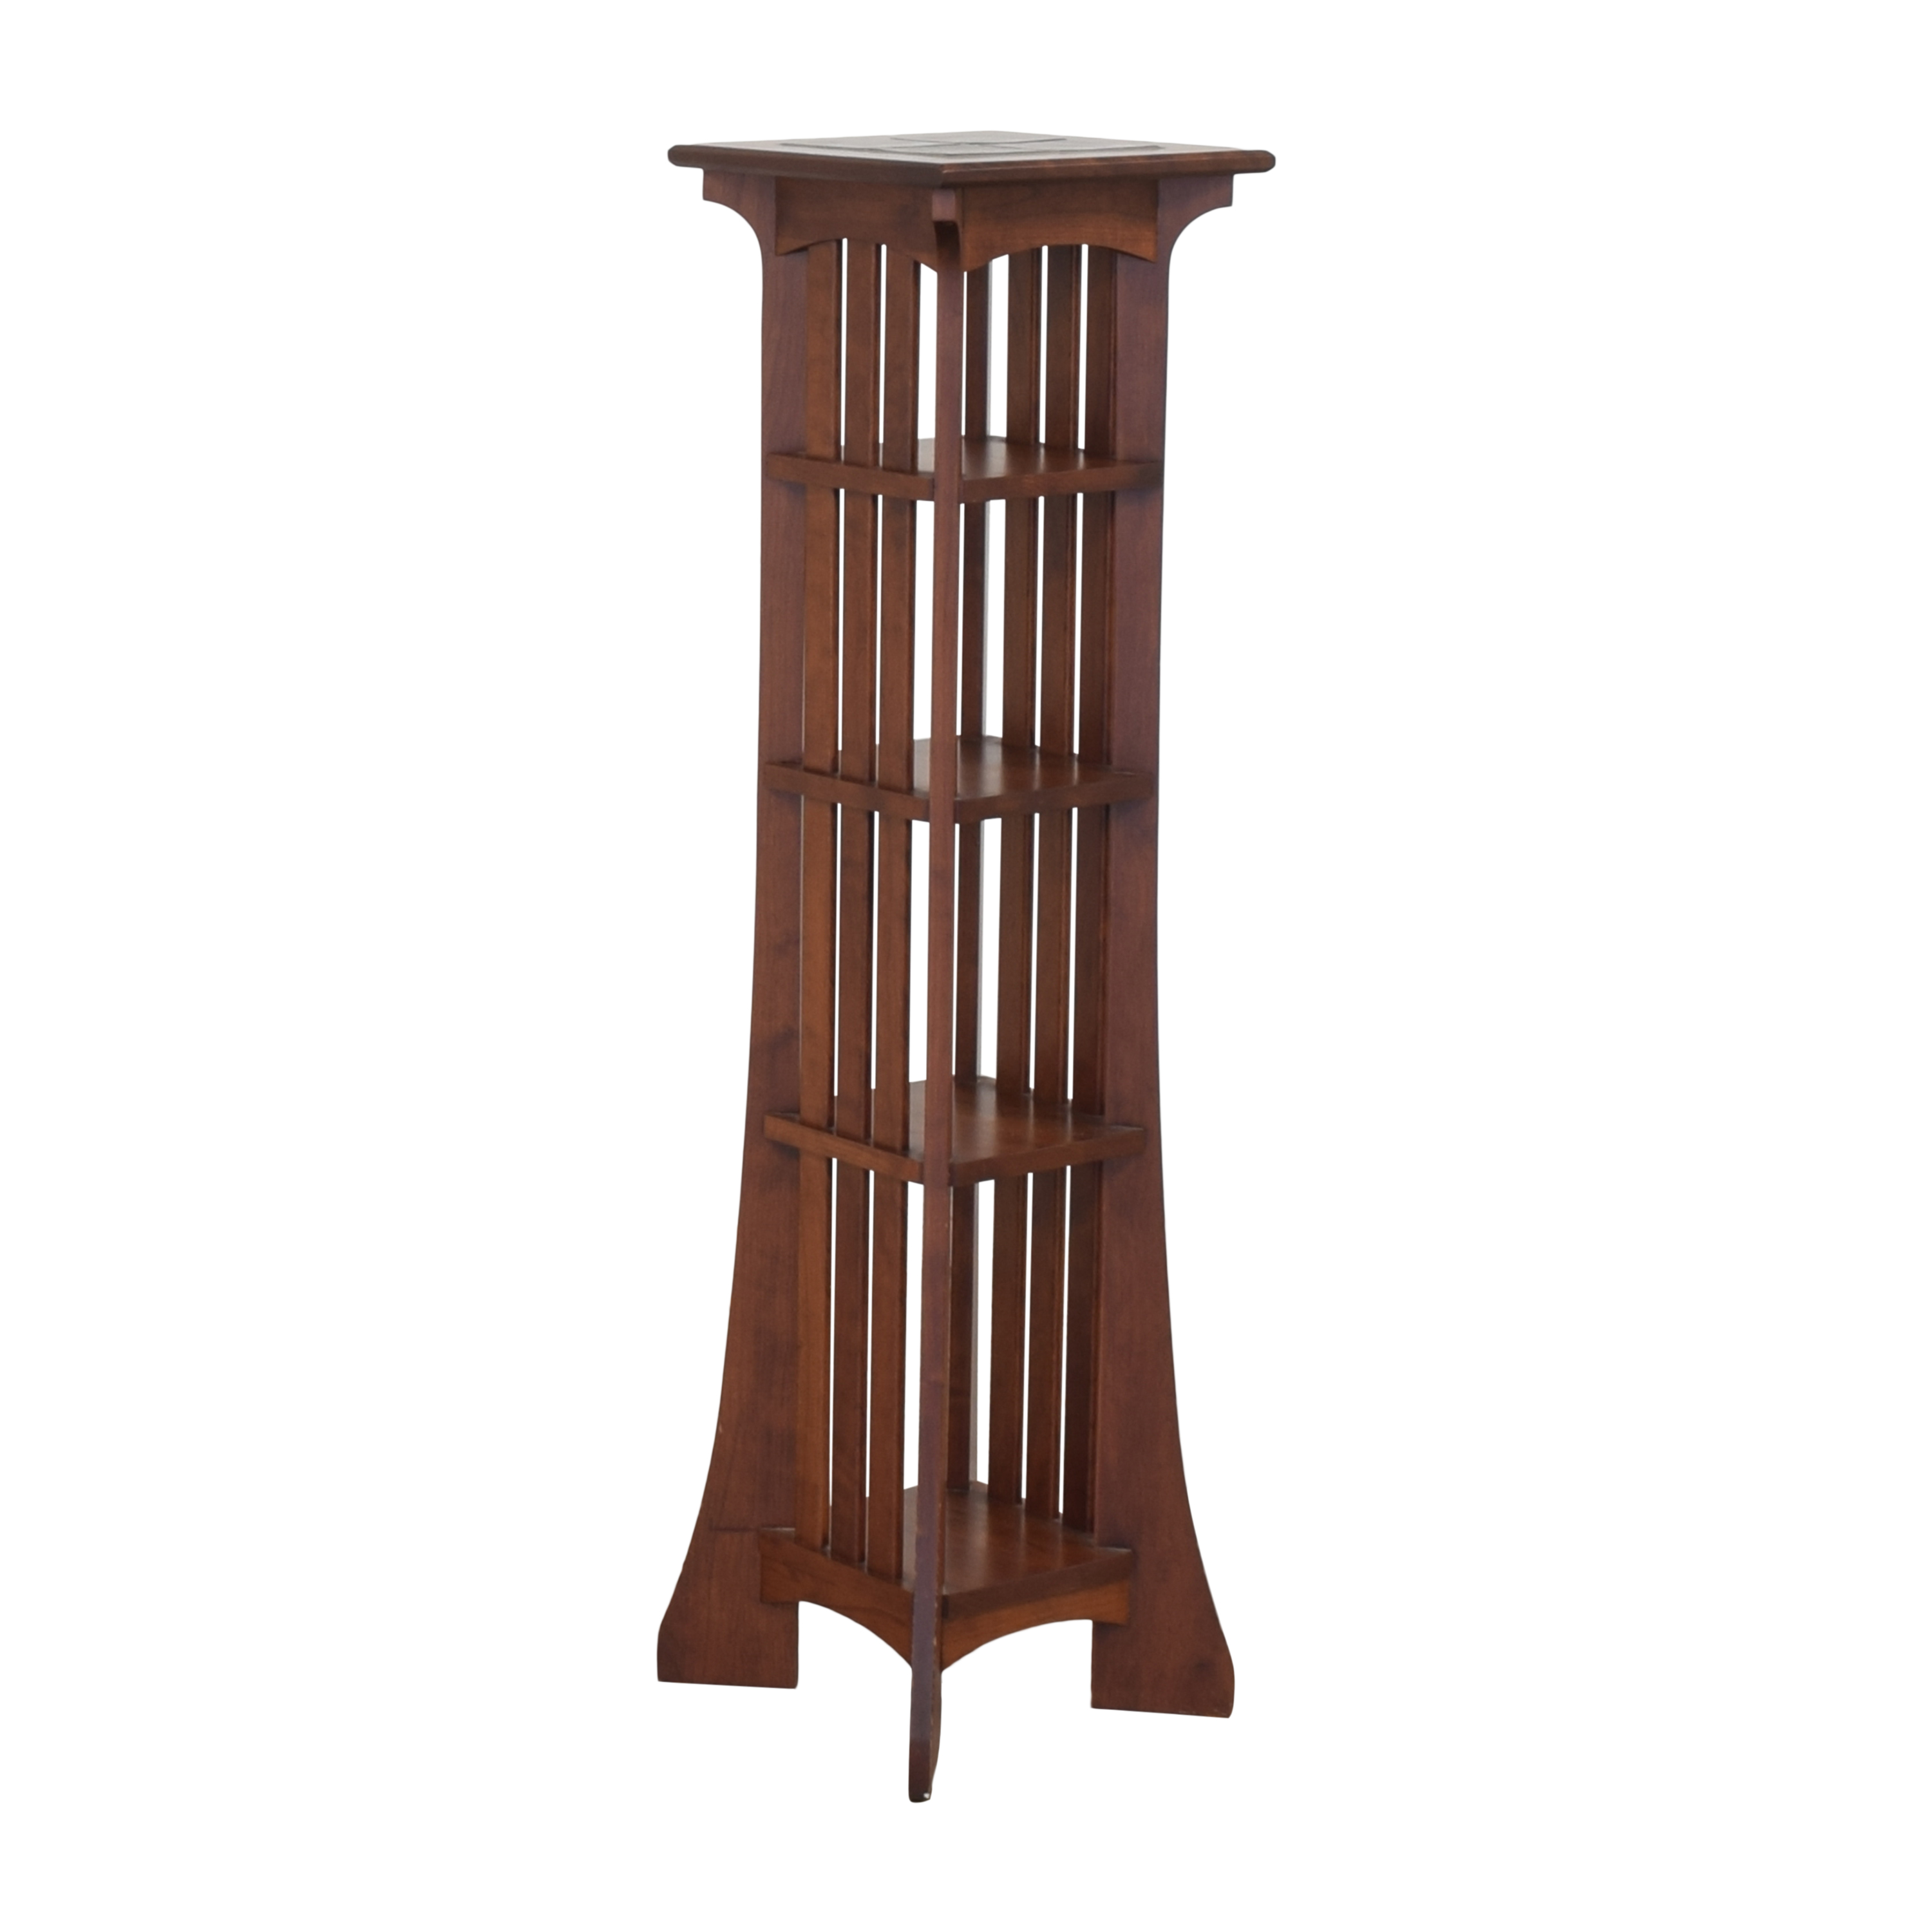 Ethan Allen Ethan Allen American Impressions Five Tier Plant Stand dimensions